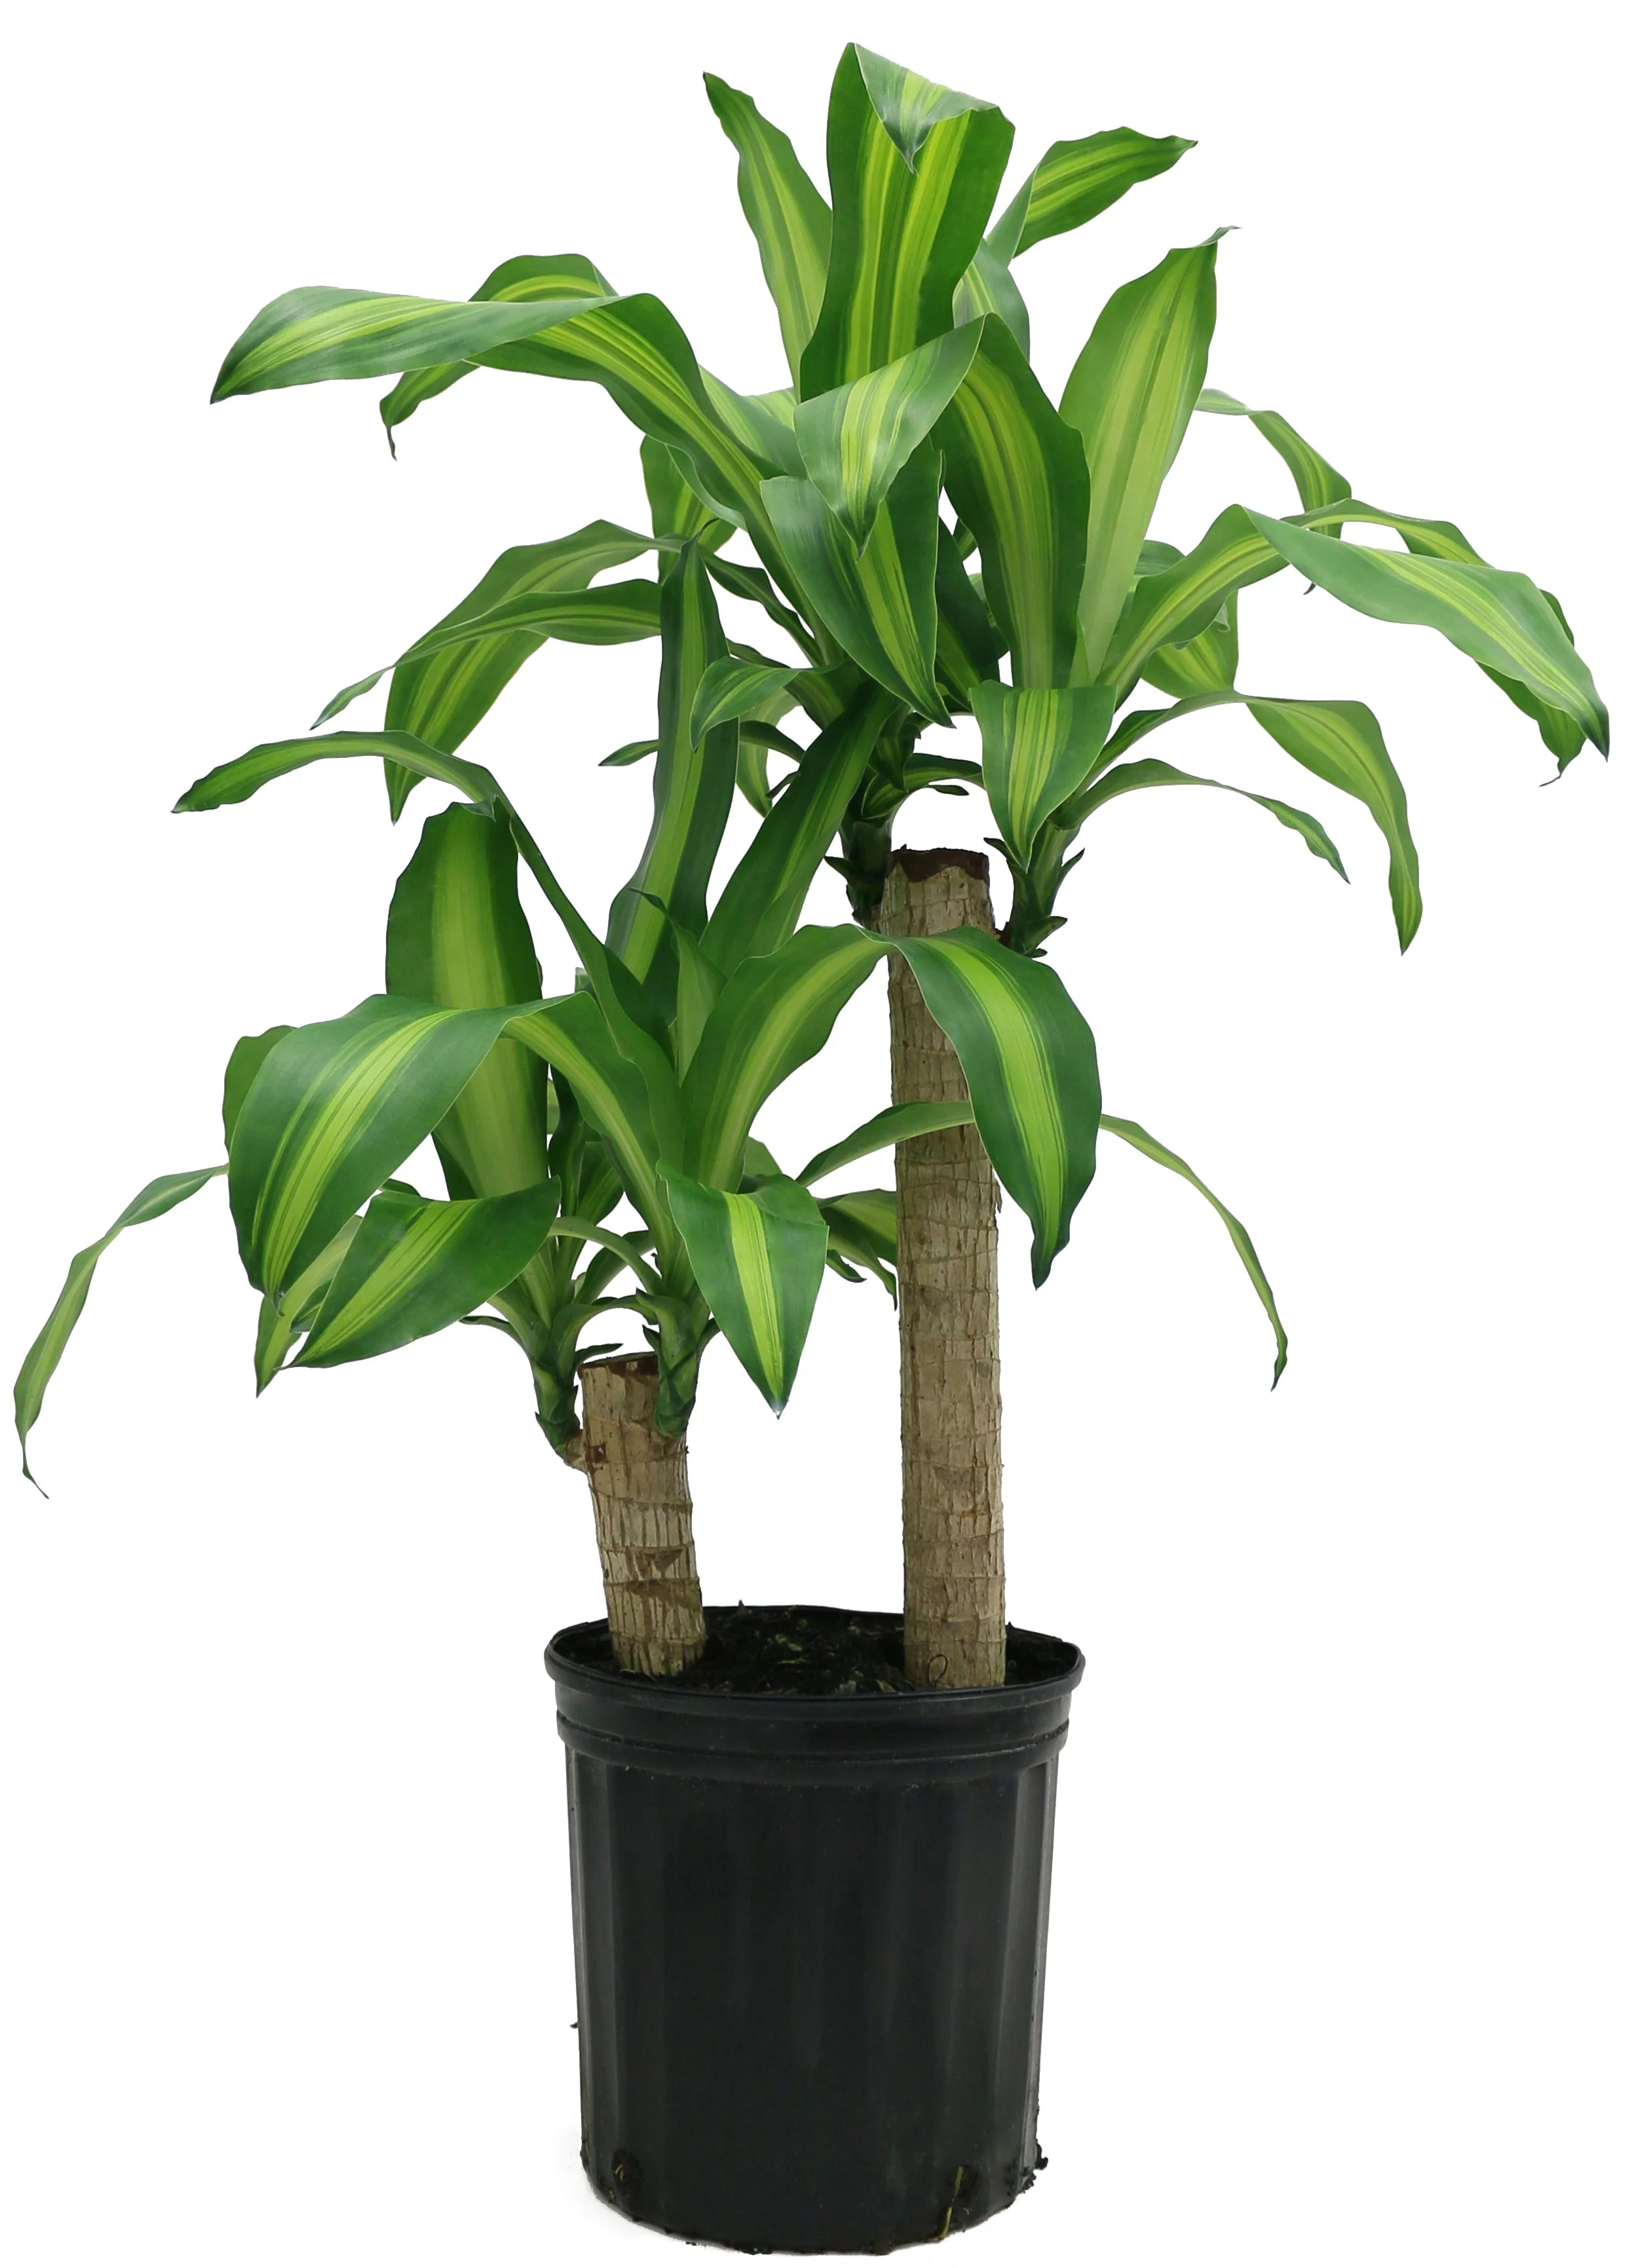 Dracaena Plant Delray Plants Mass Cane Dracaena Fragrans Corn Plant Easy To Grow Live House Plant 10 Inch Grower S Pot